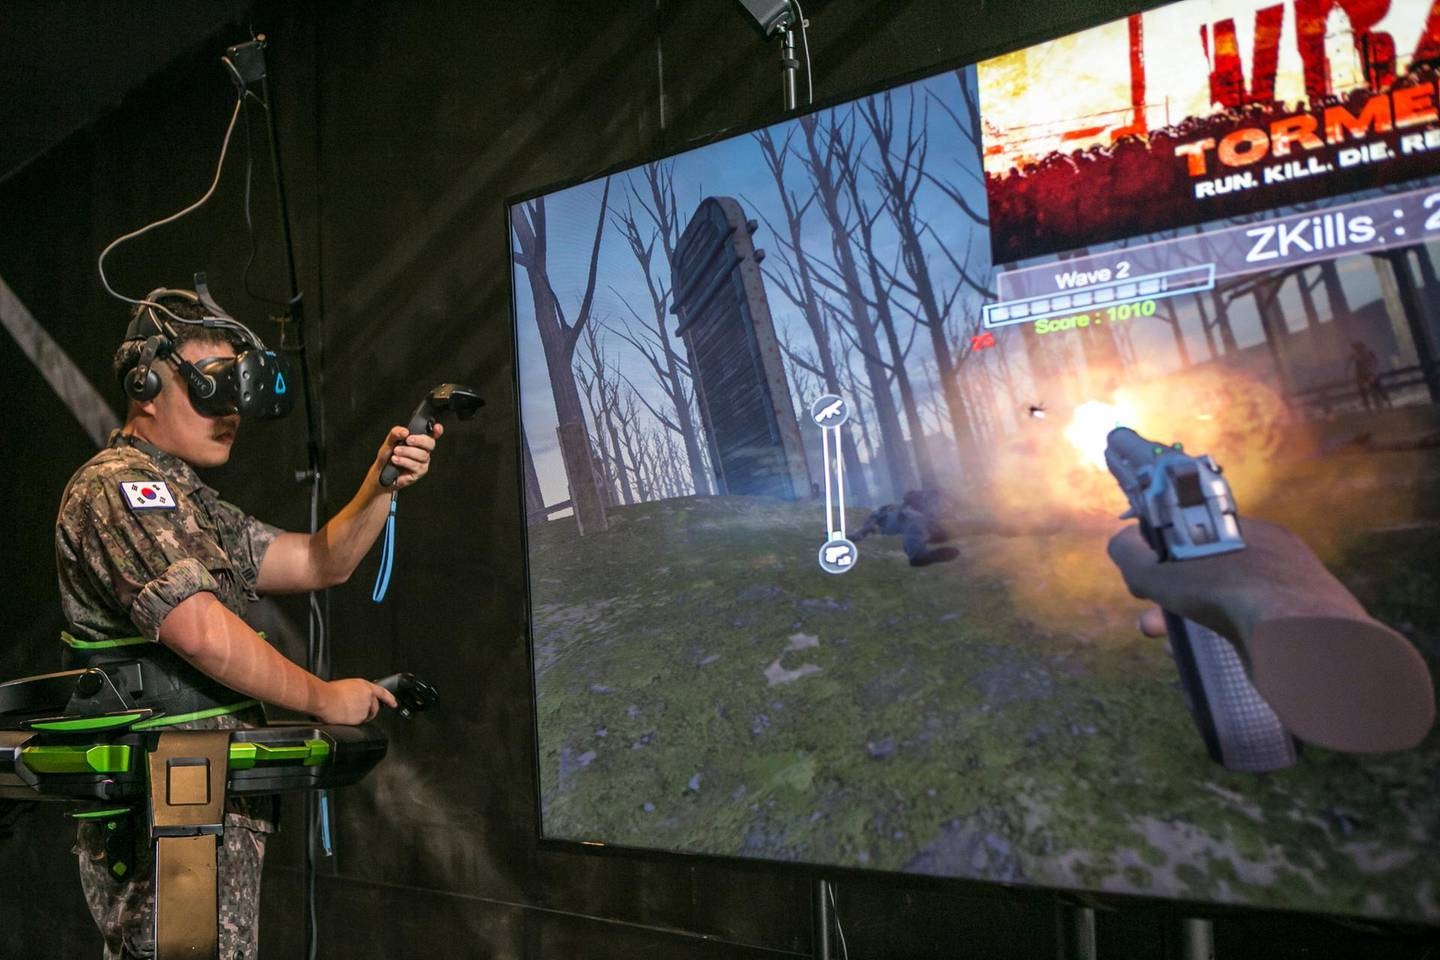 A gamer wearing virtual reality (VR) headset plays a shooting game during SK Telecom Co.'s 5GX Game Festival in Goyang, South Korea, on Friday, Aug. 10, 2018. Professional video gaming began in South Korea more than a decade ago, and has given rise to leagues that now pack stadiums and draw hundreds of thousands of eyeballs toTwitch livestreamsfor tournaments. Photographer: Jean Chung/Bloomberg